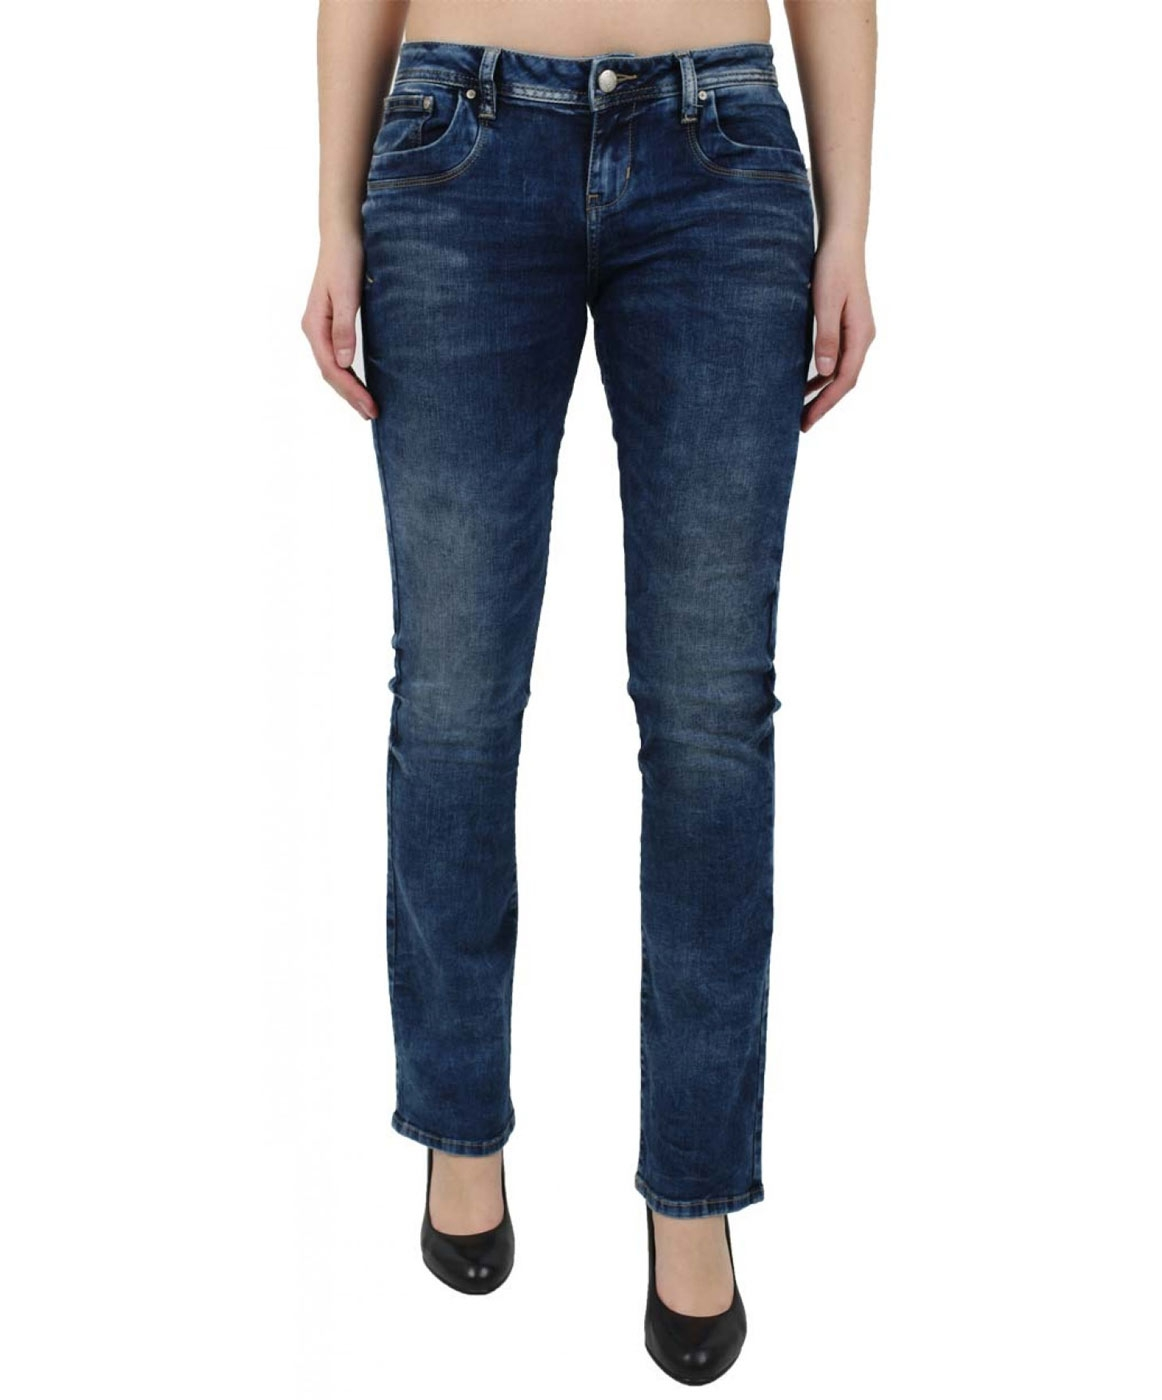 Hosen - LTB Bootcut Jeans Valerie in Blue Lapis  - Onlineshop Jeans Meile